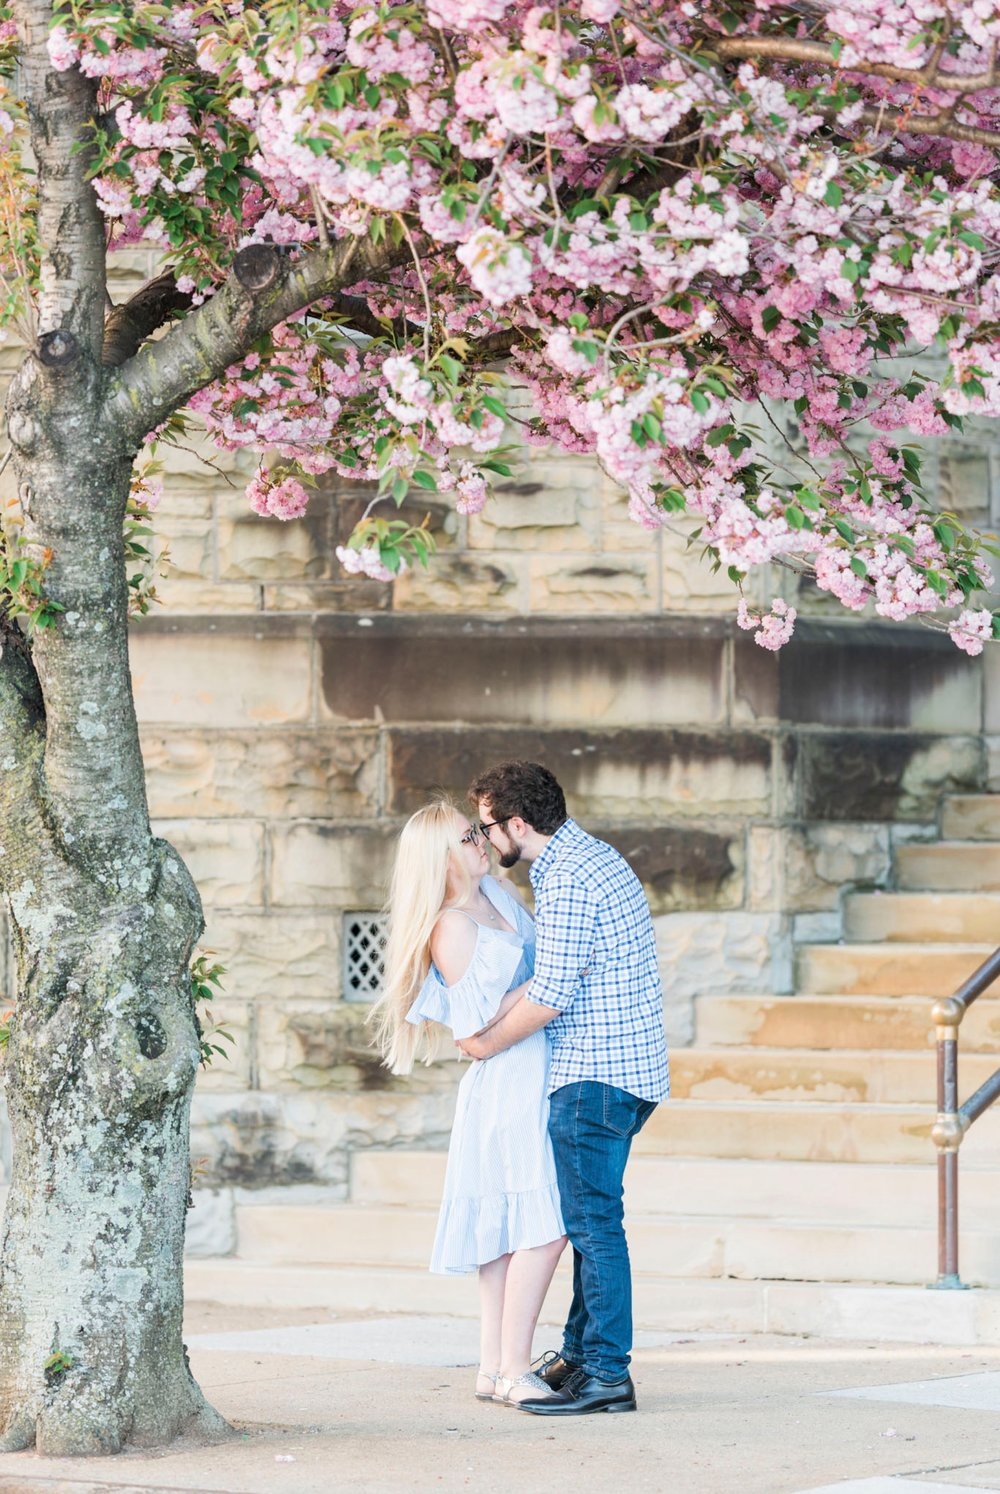 LaunceTarah_VirginiaWeddingPhotographer_EngagementSession_LynchburgVA_DowntownLynchburg_SpringEngagement 3.jpg